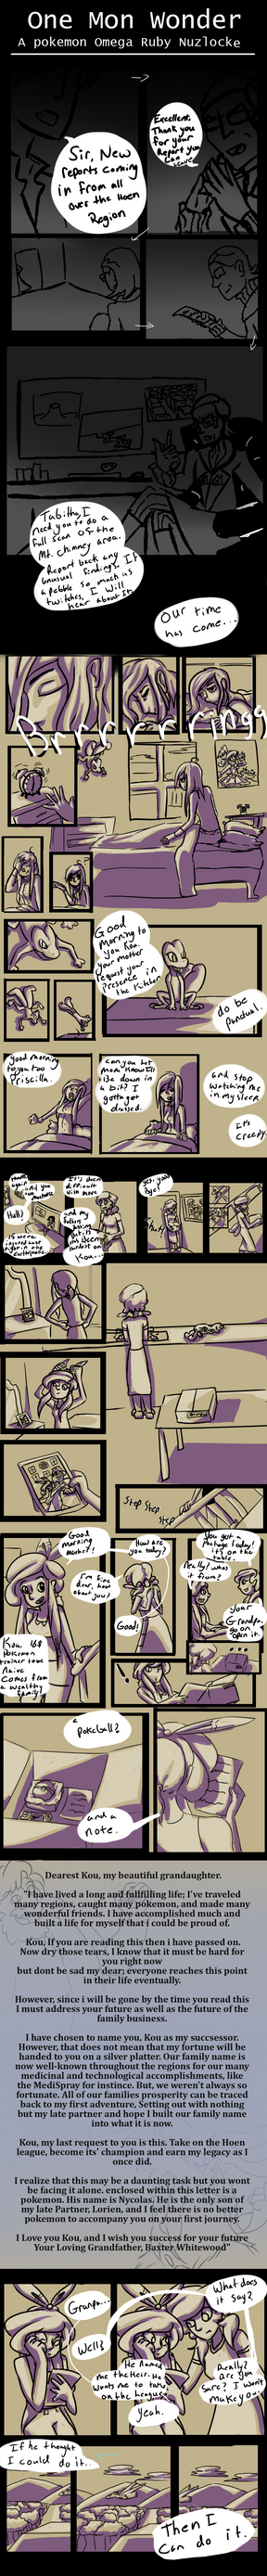 One Mon Wonder: Page 1 -Revamp- by ObsidianMelody